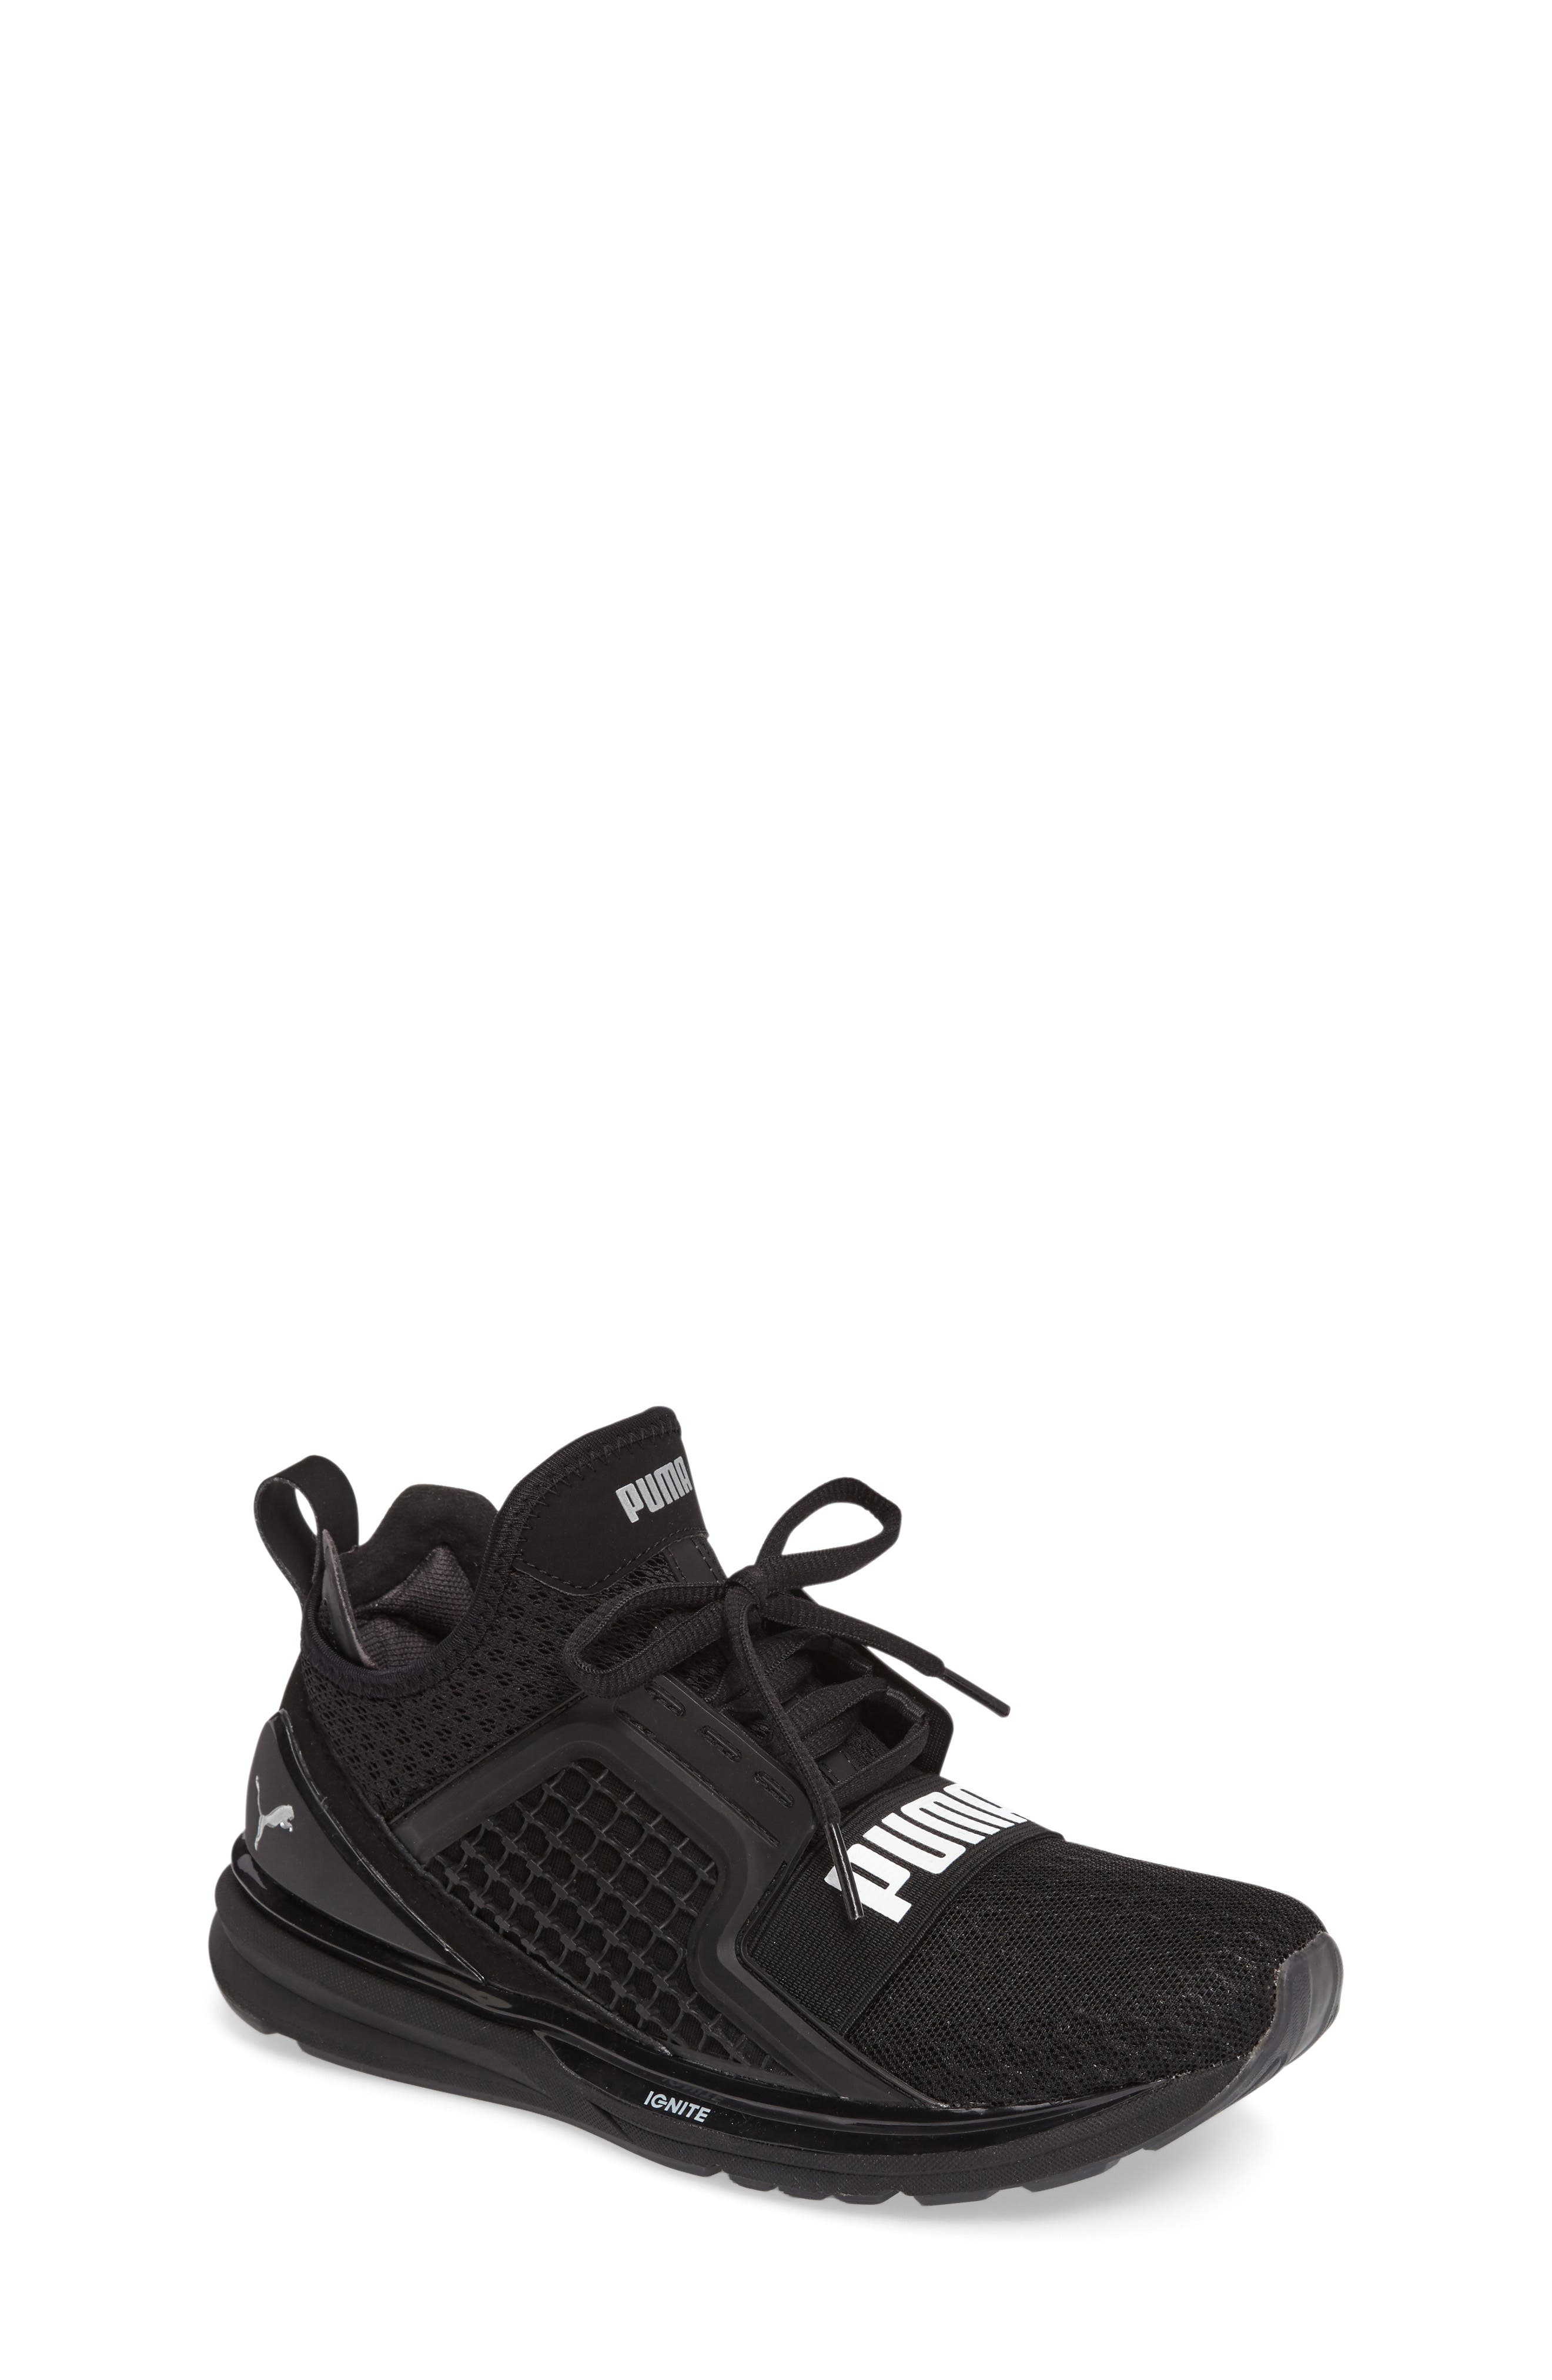 Ignite Limitless Sneaker,                         Main,                         color, 001